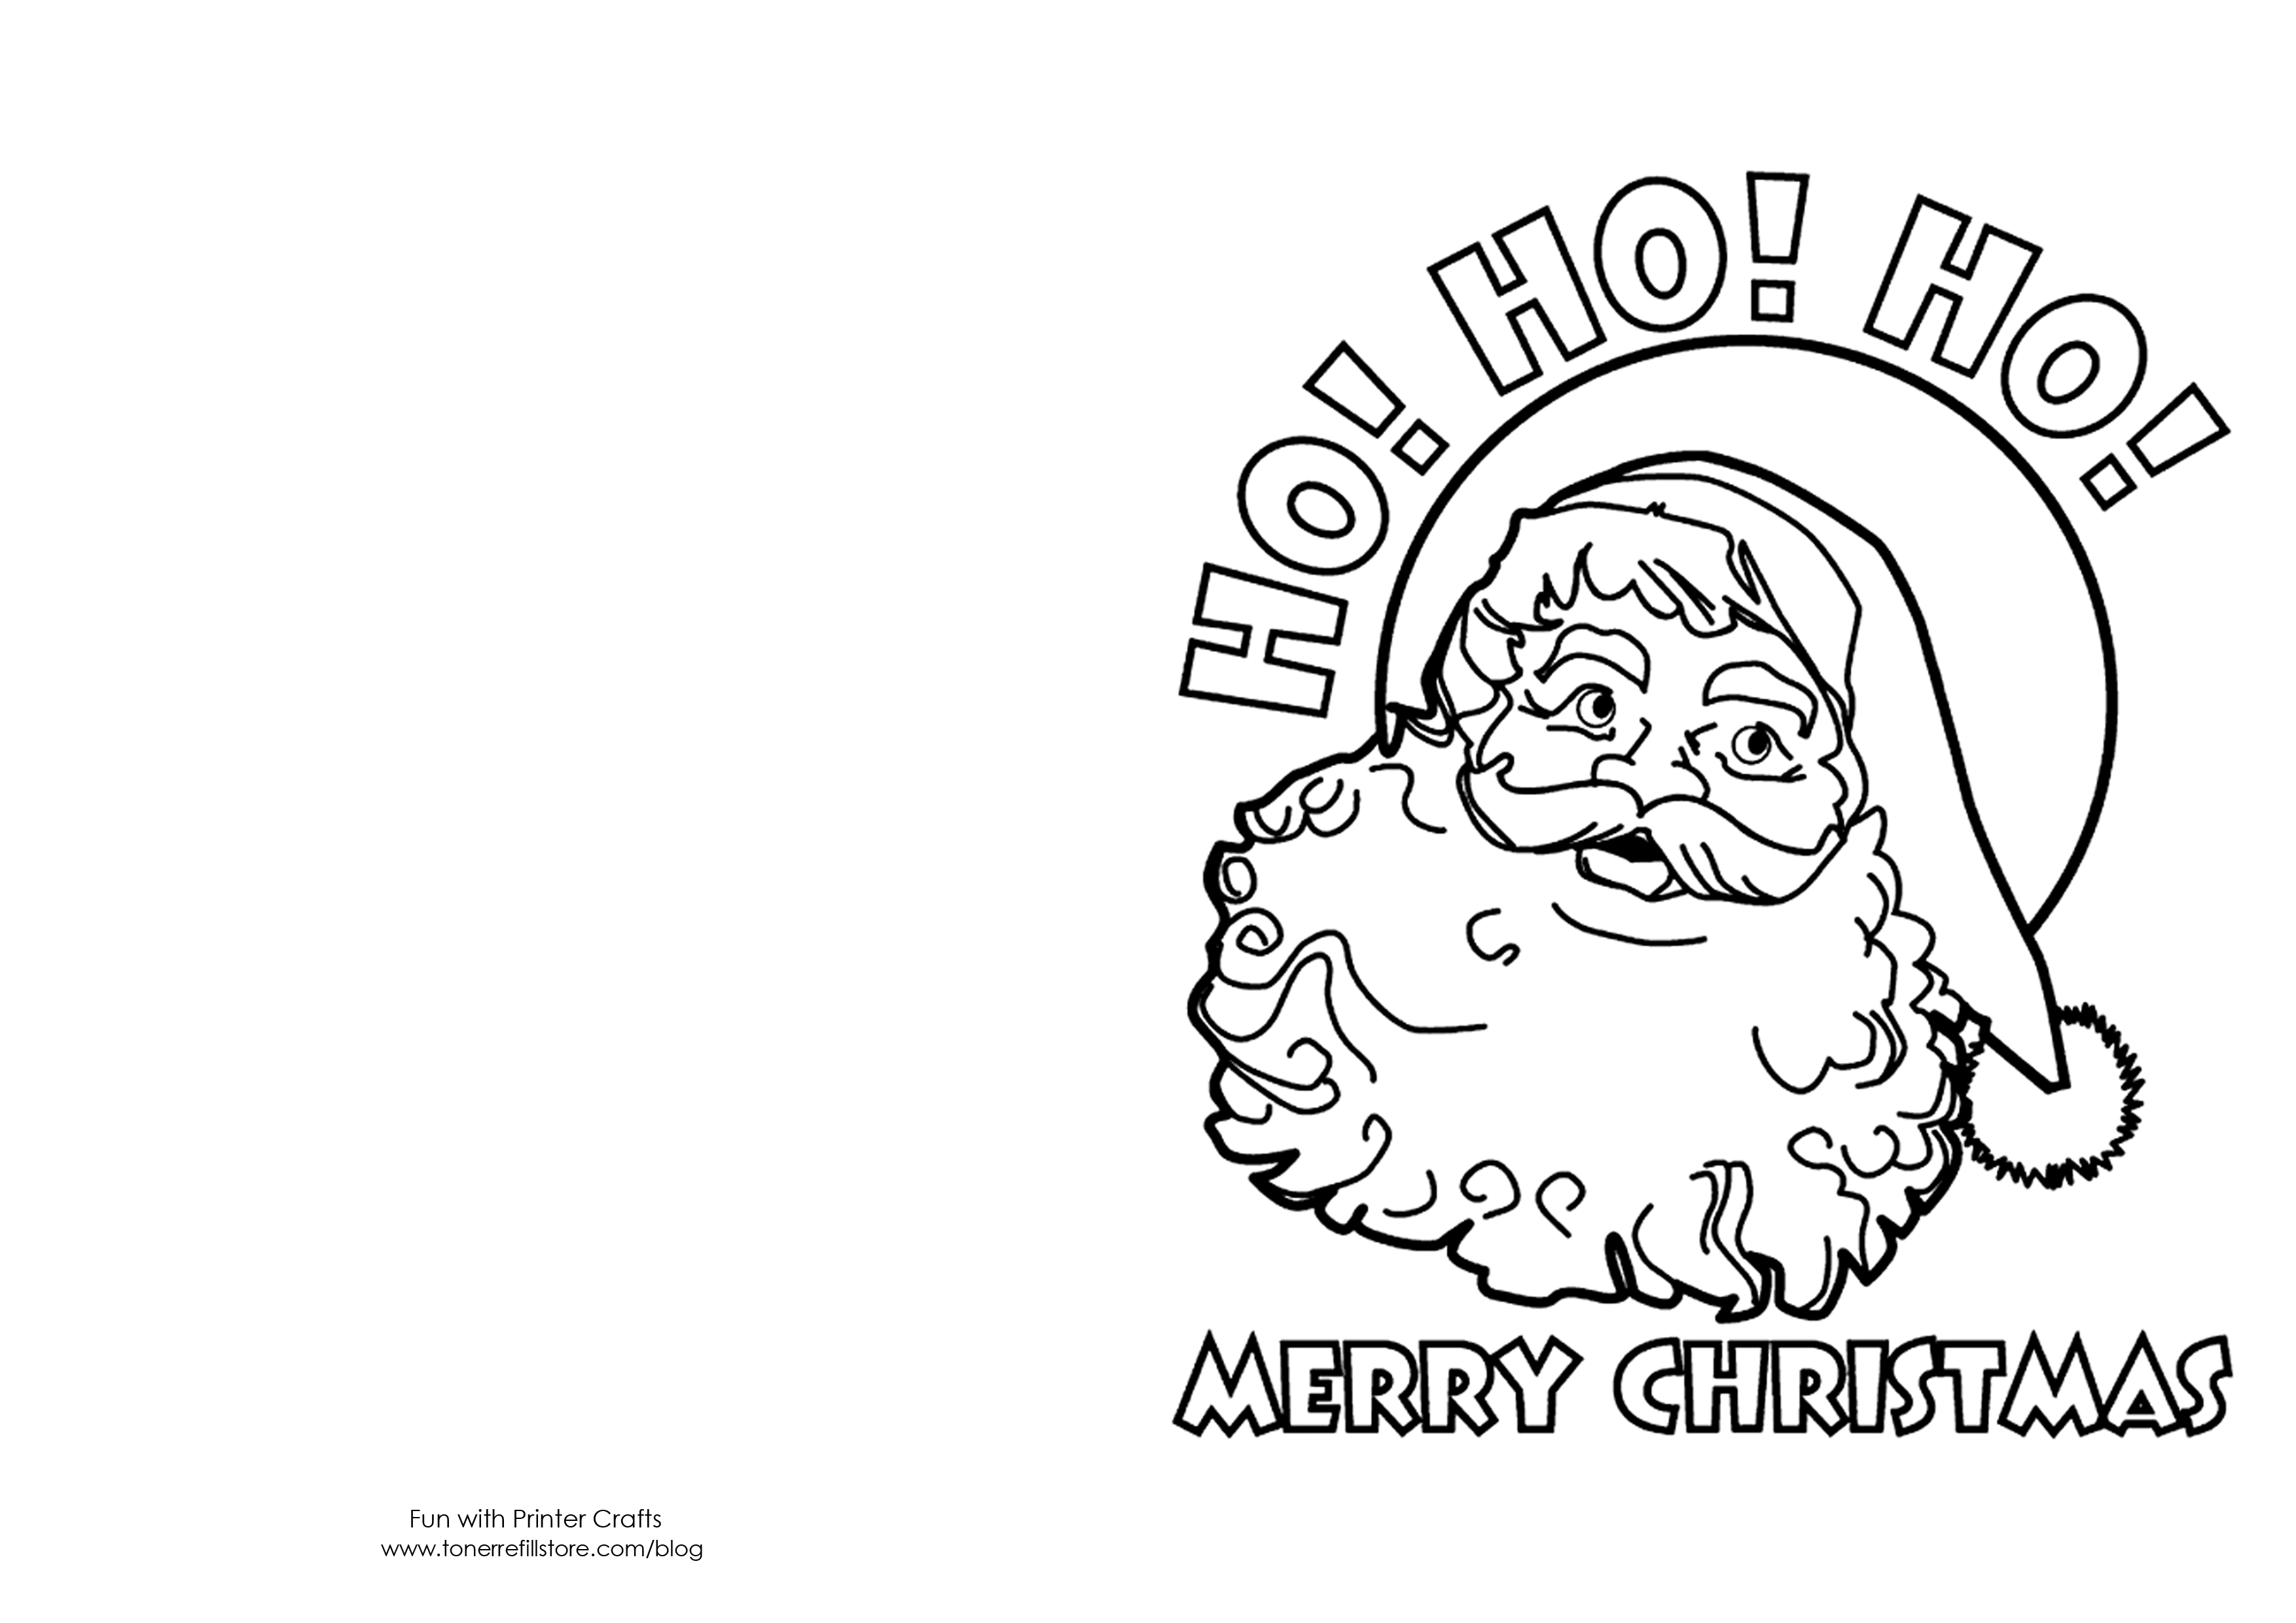 Merry Christmas Cards Coloring Pages With Printable Kids Crafts Pinterest